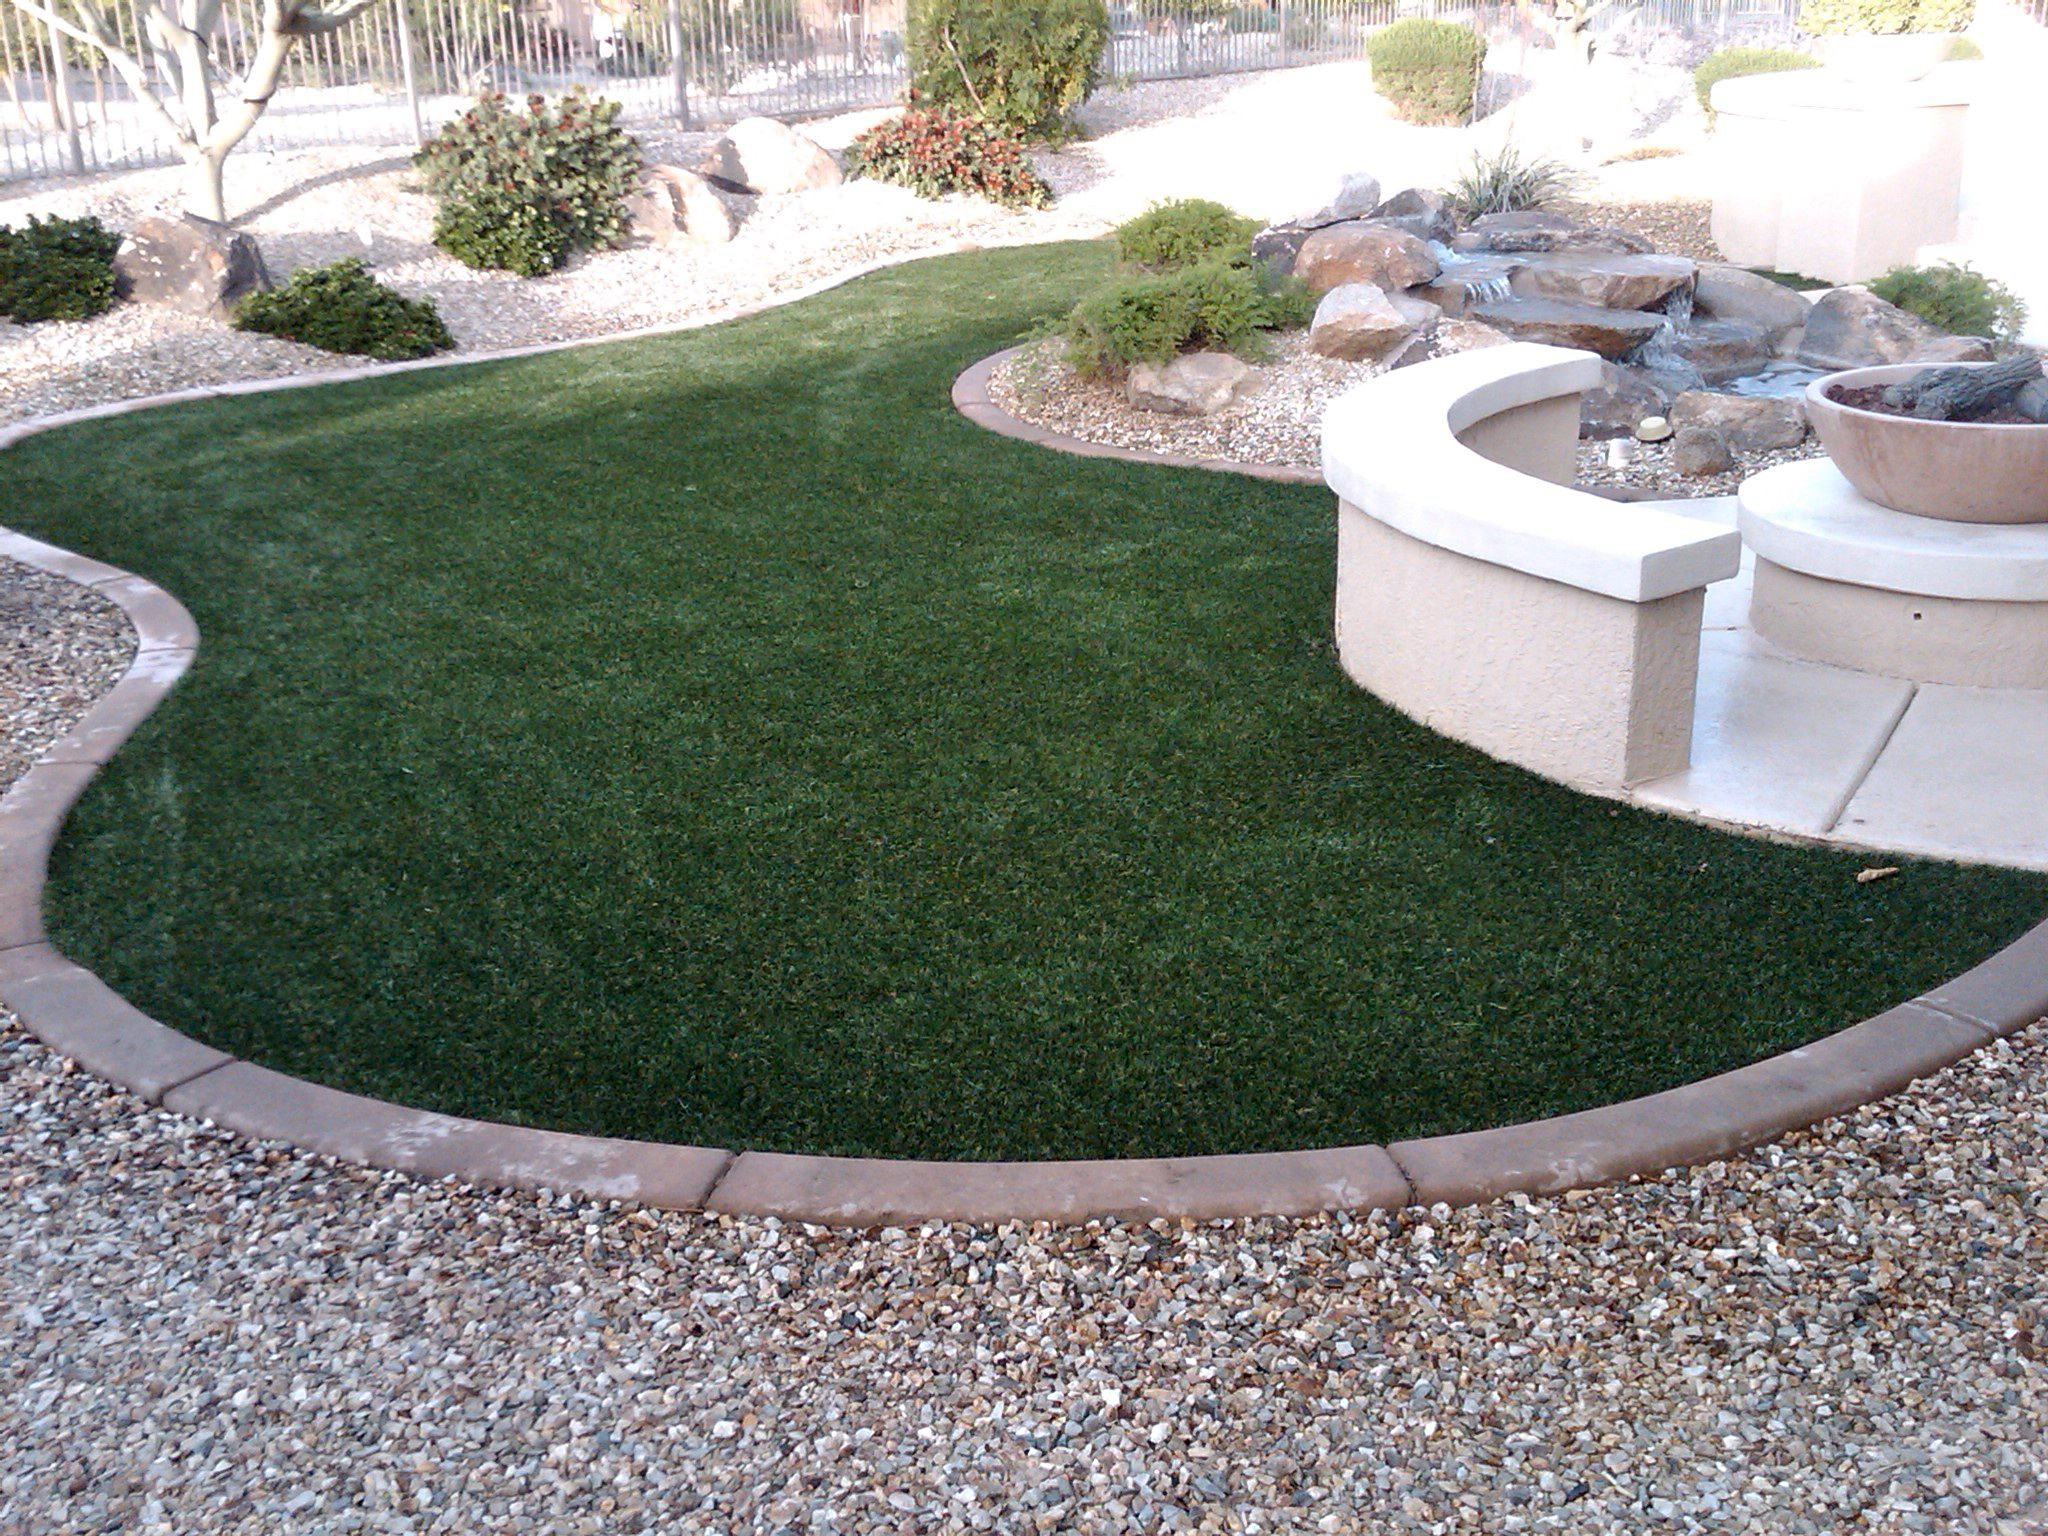 synthetic grass from arizona turf solutions  i like the seating area in the middle